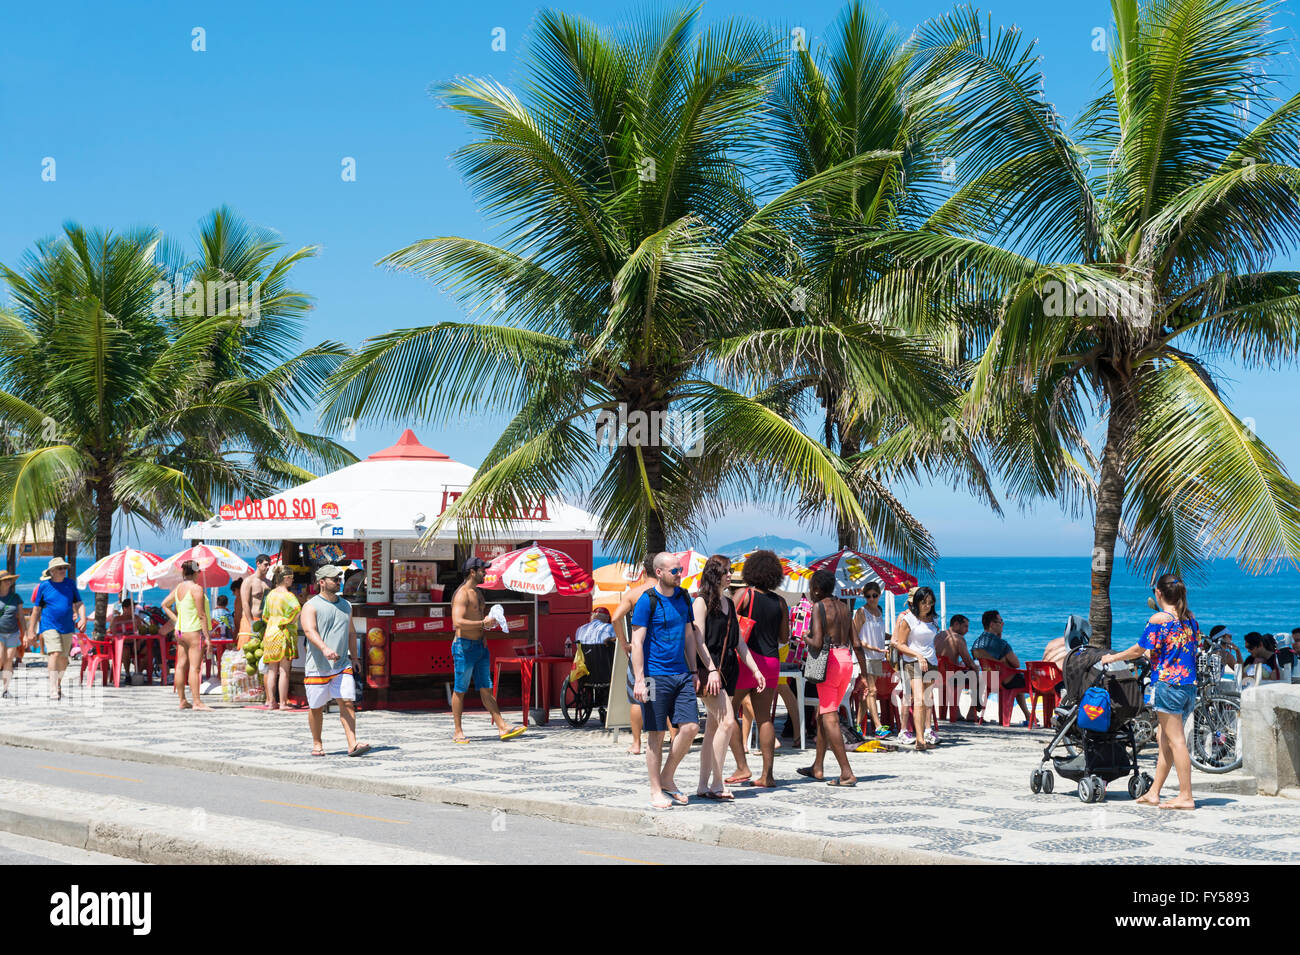 RIO DE JANEIRO, BRAZIL - MARCH 20, 2015: Brazilians relax at a kiosk selling coconuts overlooking Ipanema Beach. - Stock Image